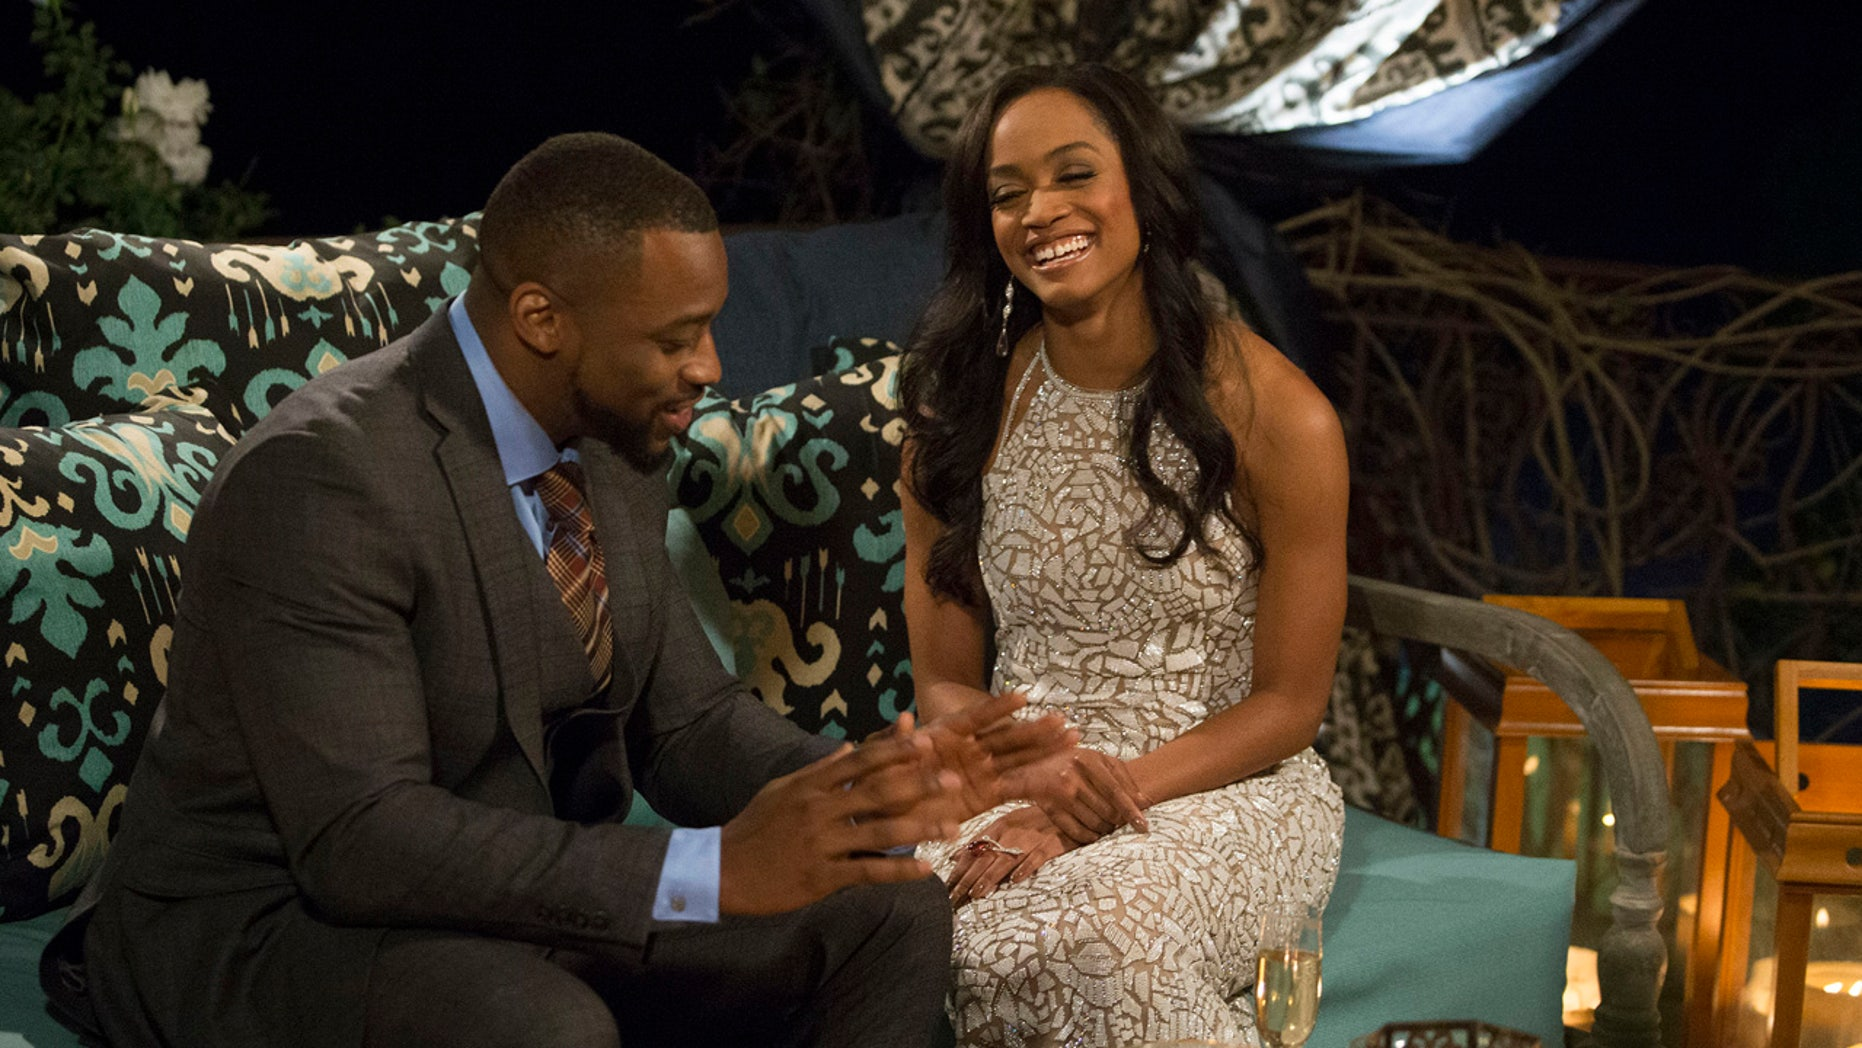 """BACHELORETTE 13 - """"Episode 1301"""" - Accomplished Texas attorney Rachel Lindsay takes a recess from the courtroom to start her search for happily ever after in the 13th edition of ABC's hit series, """"The Bachelorette,"""" premiering at a special time, MONDAY, MAY 22 (9:01-11:00 p.m. EDT), on The ABC Television Network. (ABC/Paul Hebert)KENNY, RACHEL LINDSAY"""